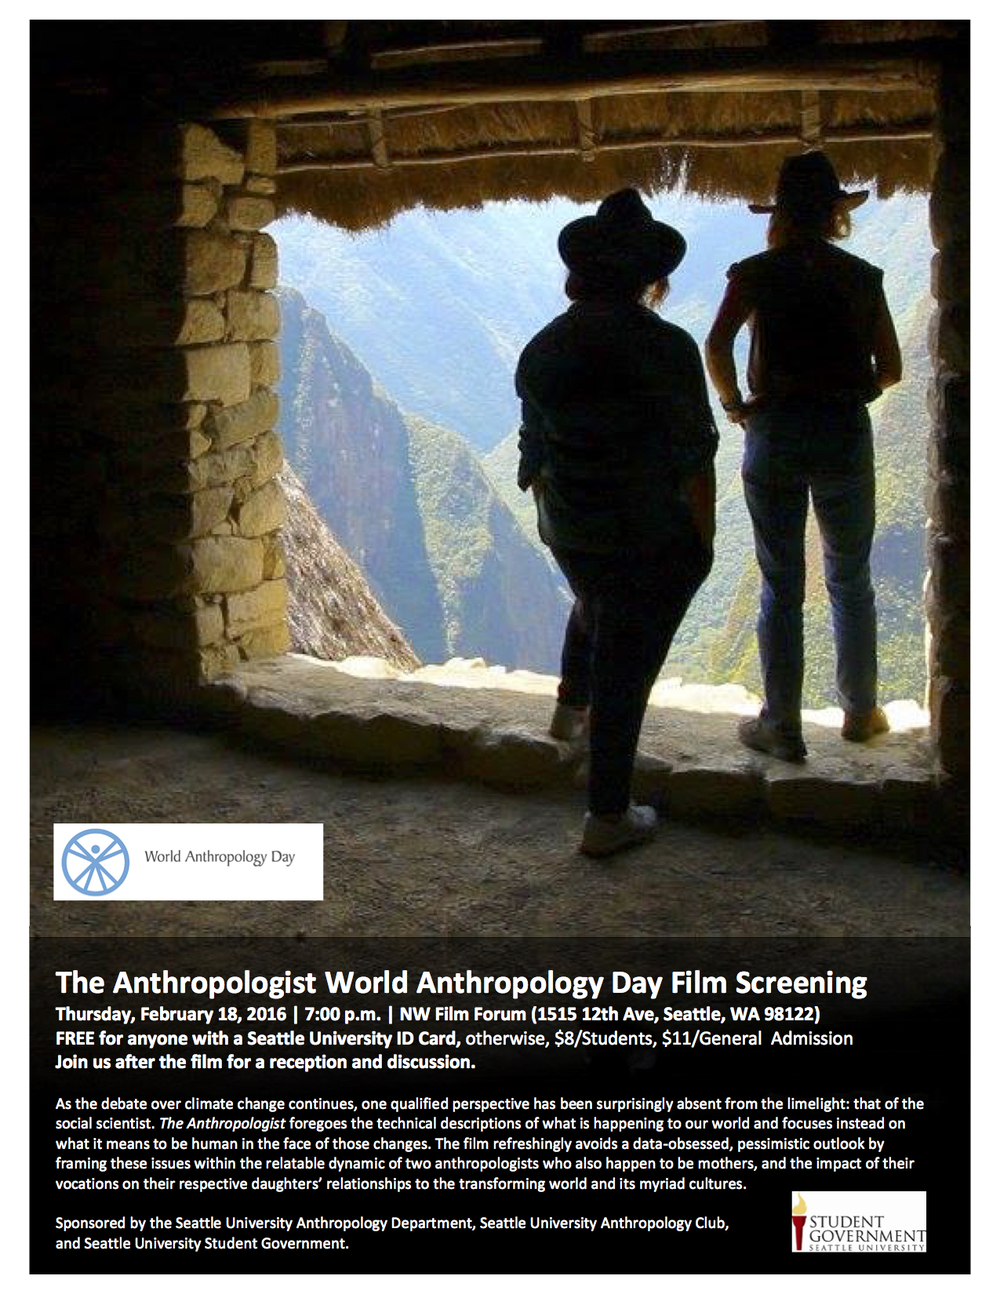 WAD Film Screening Poster.jpg